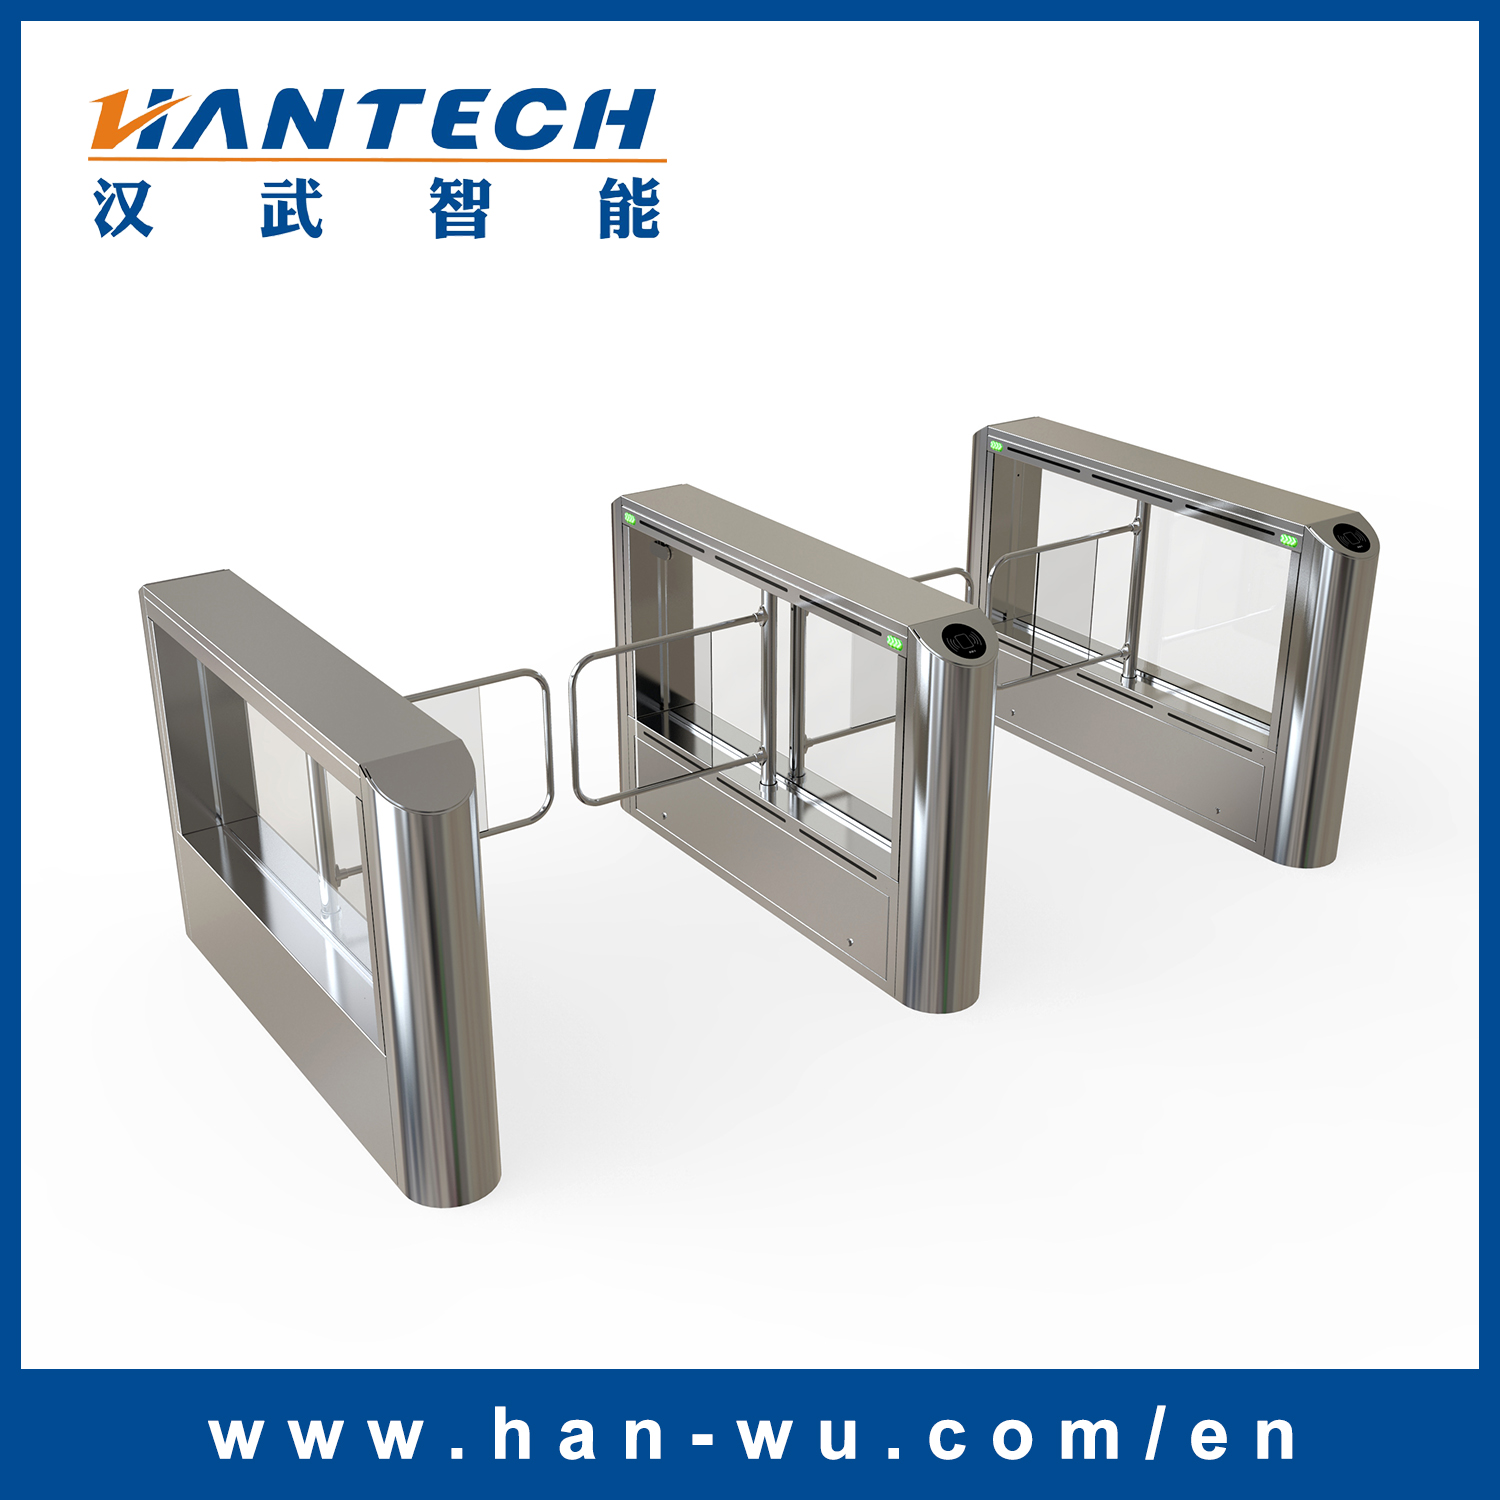 Security Access Control Swing Barrier Gate for Office Buildings Entrance/Exit System